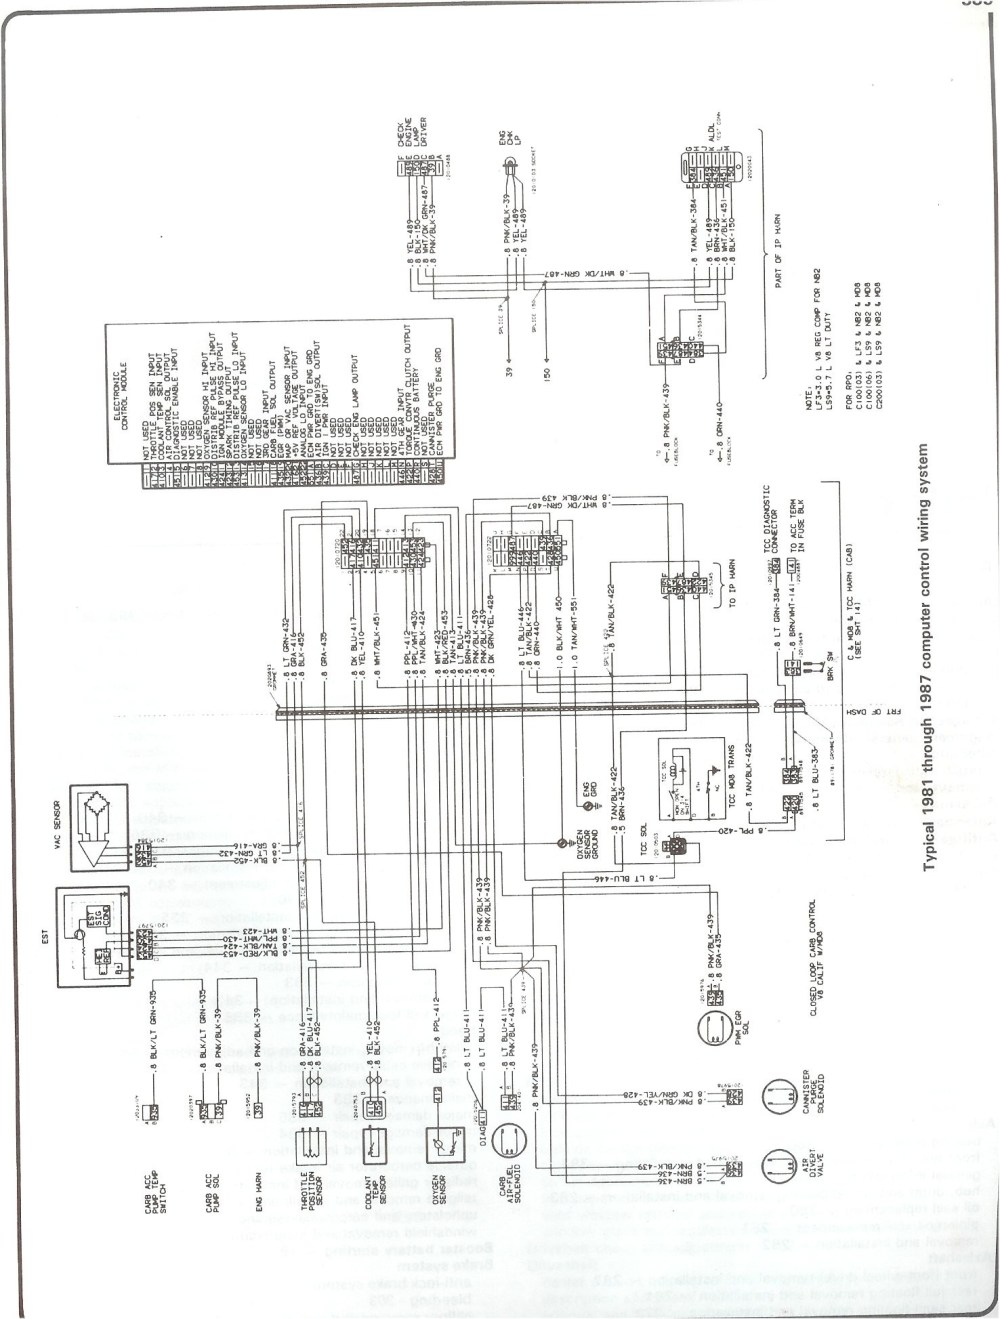 medium resolution of 1975 chevy k10 wiring diagrams wiring diagram 1975 chevy truck wiring schematic